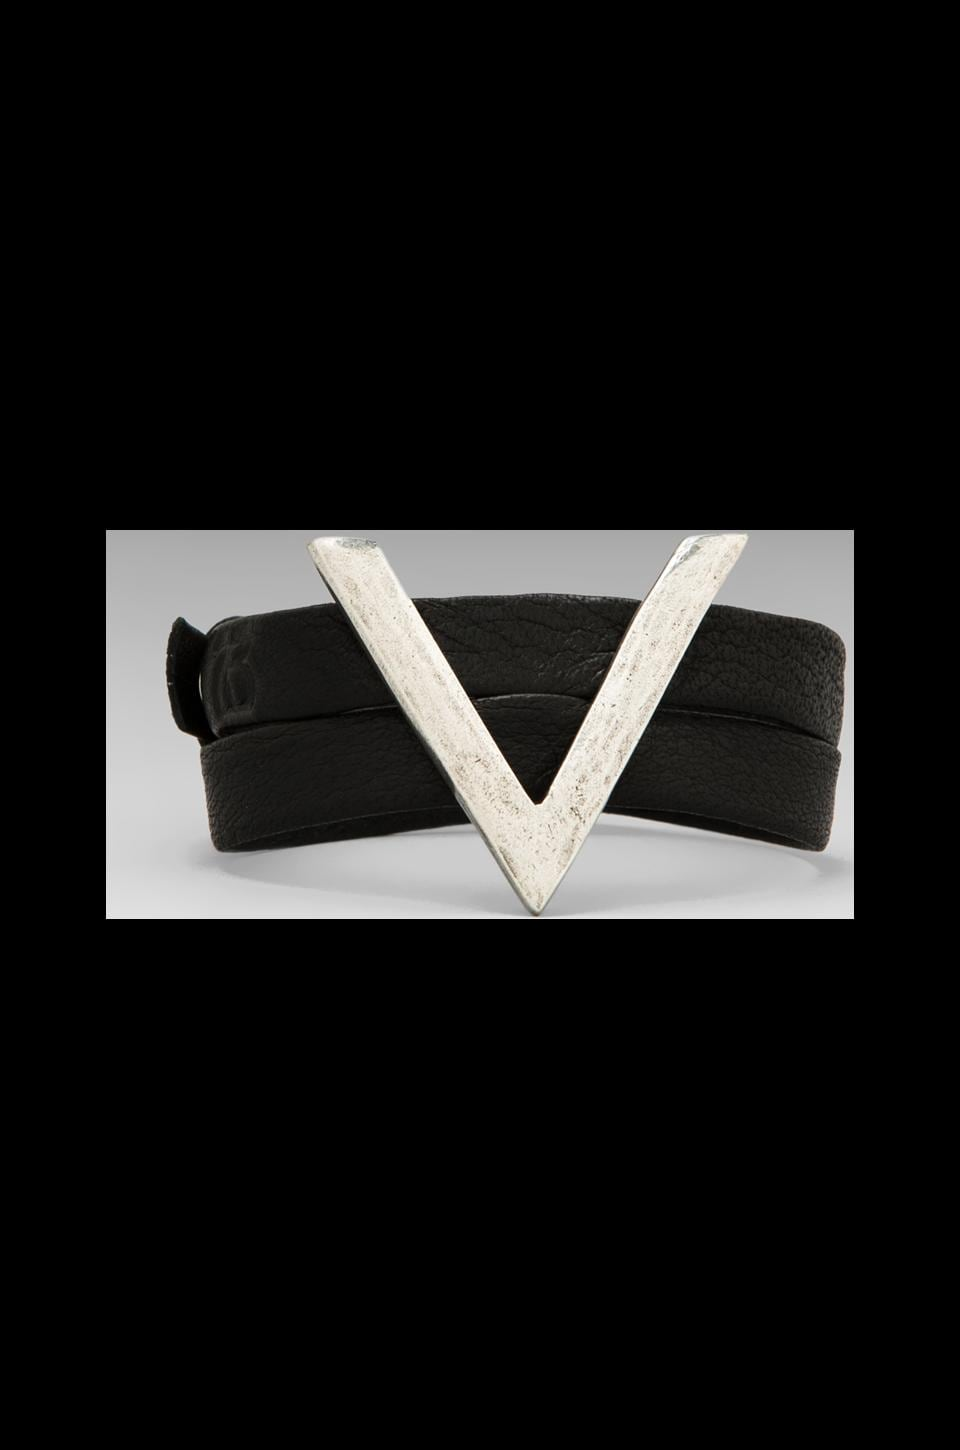 2 Bandits Leo's Arrow Leather Wrap in Antique Silver